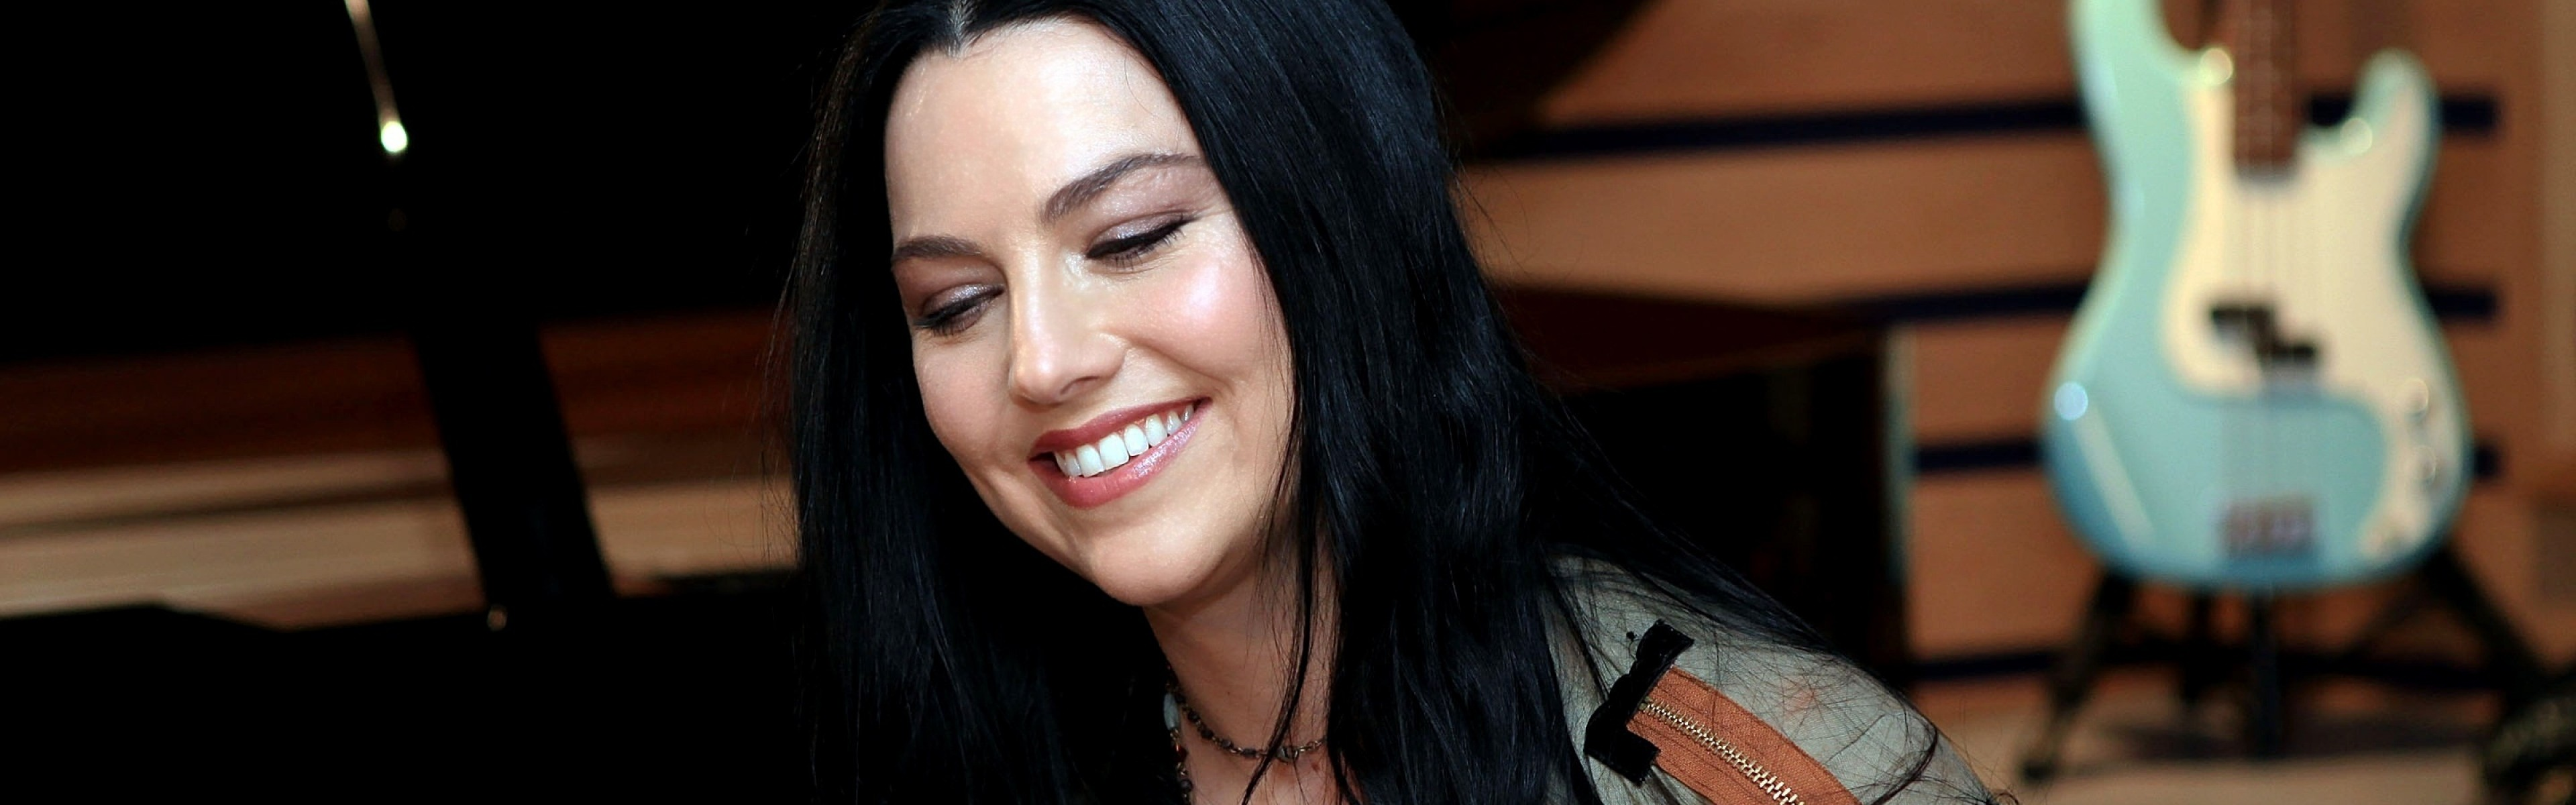 3840x1200  Wallpaper amy lee, evanescence, singer